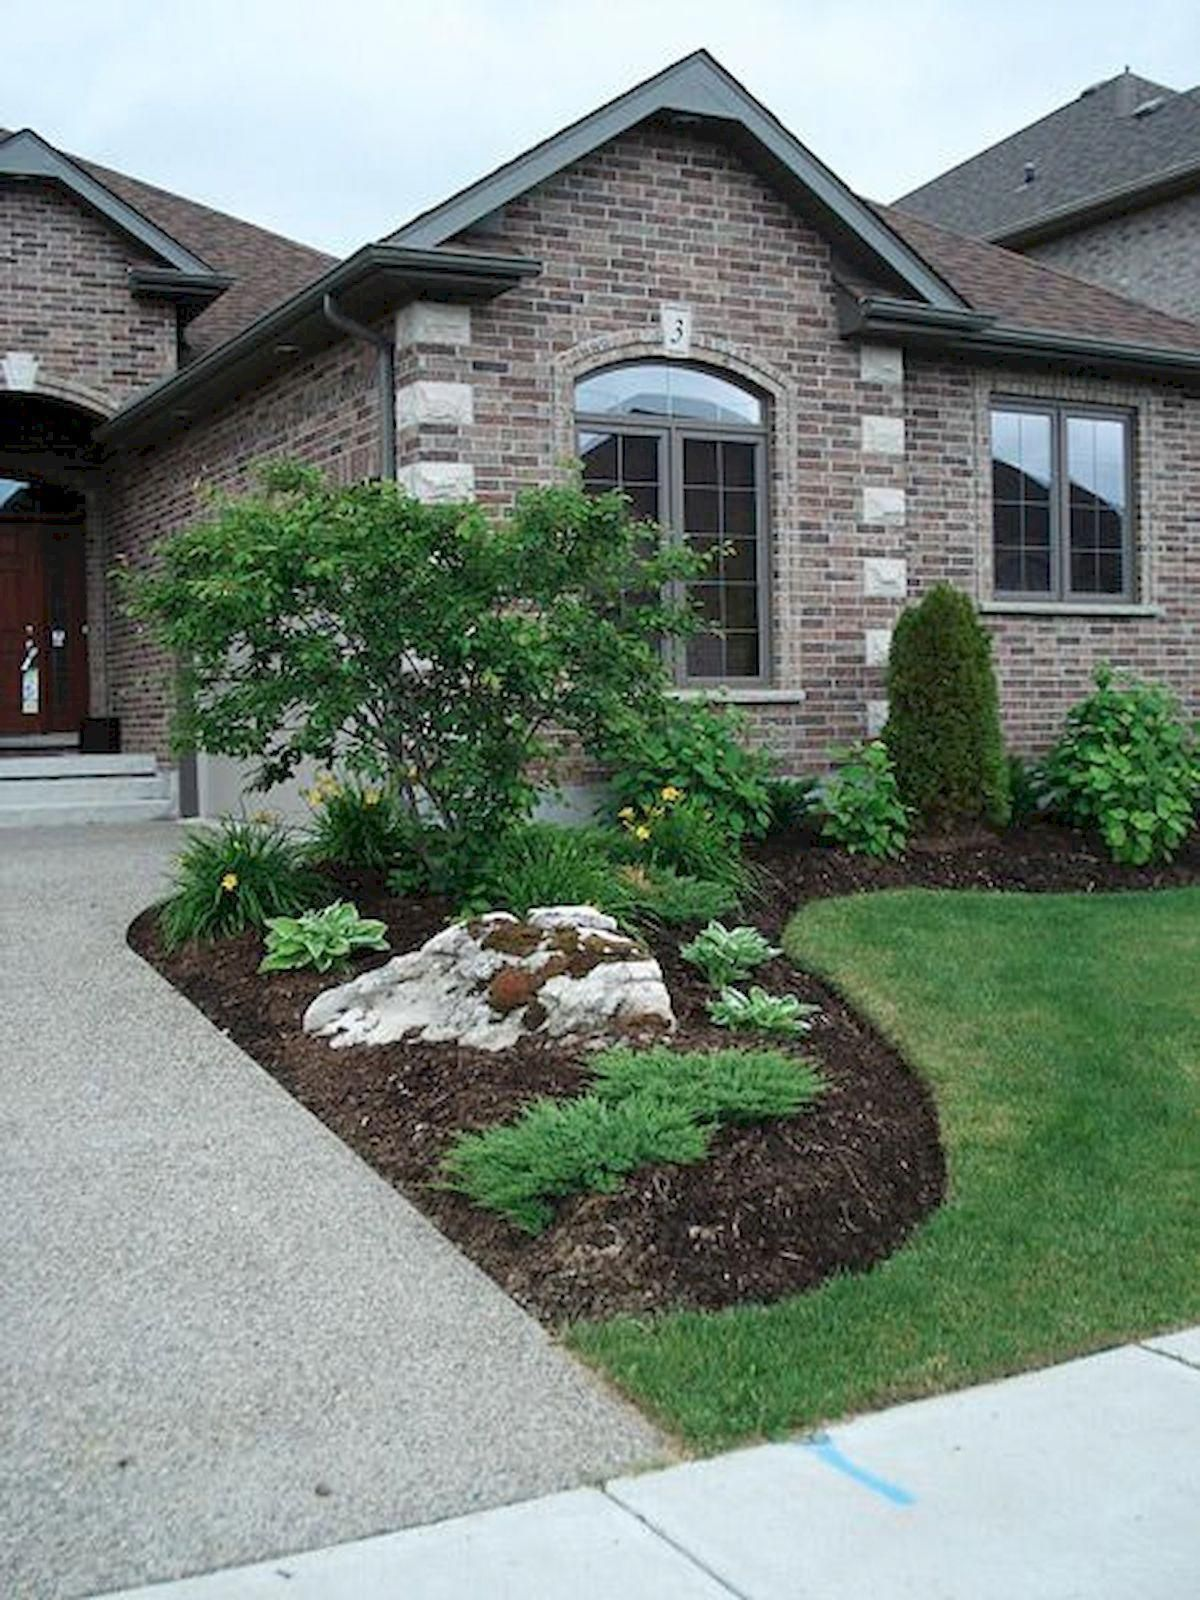 90 simple and beautiful front yard landscaping ideas on a on front yard landscaping ideas id=41148